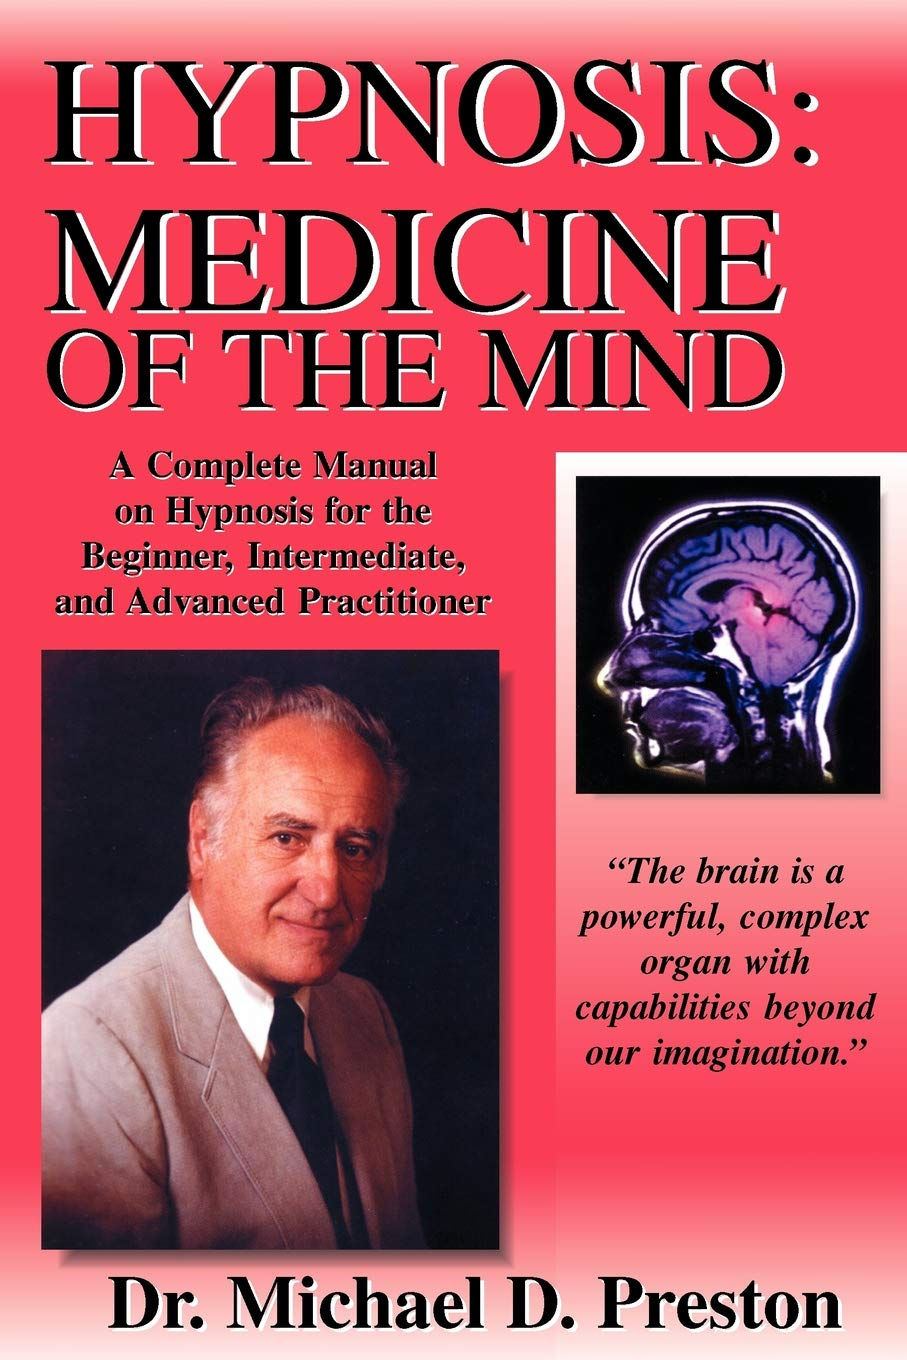 Hypnosis: Medicine of the Mind - A Complete Manual on Hypnosis for the  Beginner, Intermediate and Advanced Practitioner Paperback – Oct 6 2005